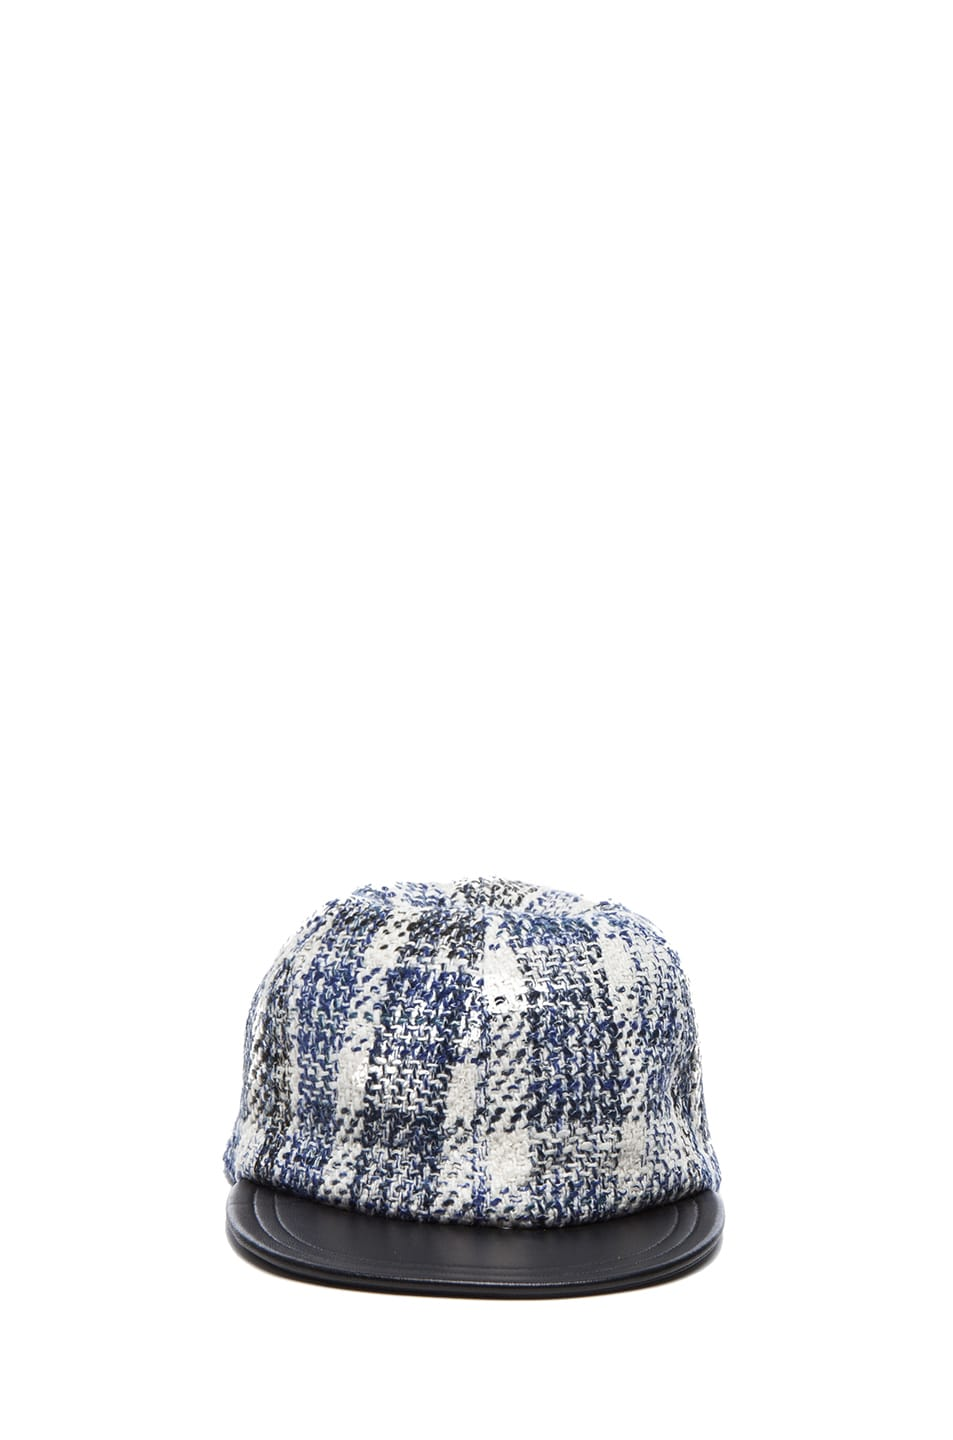 Image 1 of Eugenia Kim Darien Cap in Ivory, Cobalt & Black